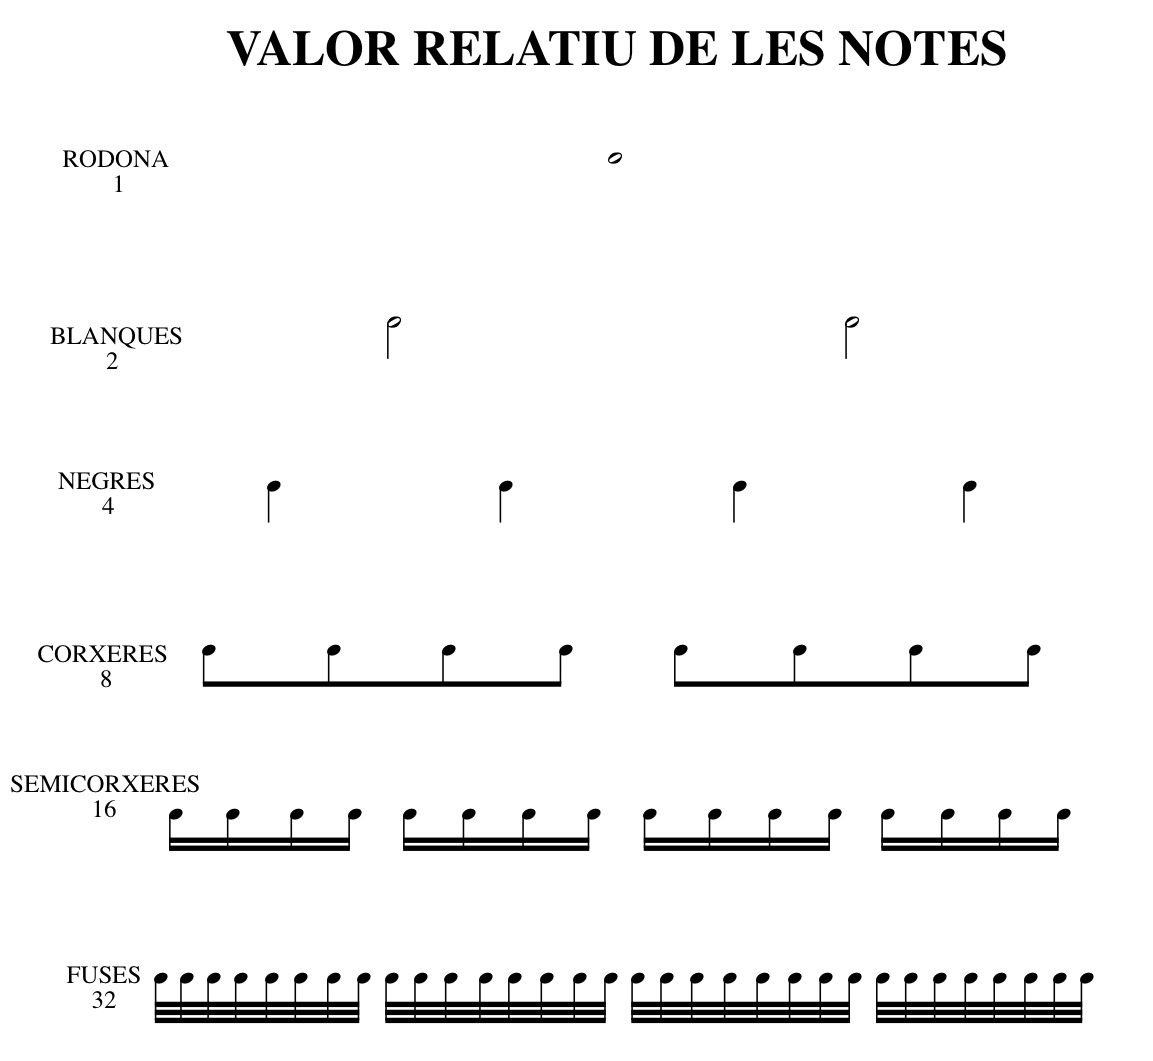 VALOR RELATIU DE LES NOTES.jpg